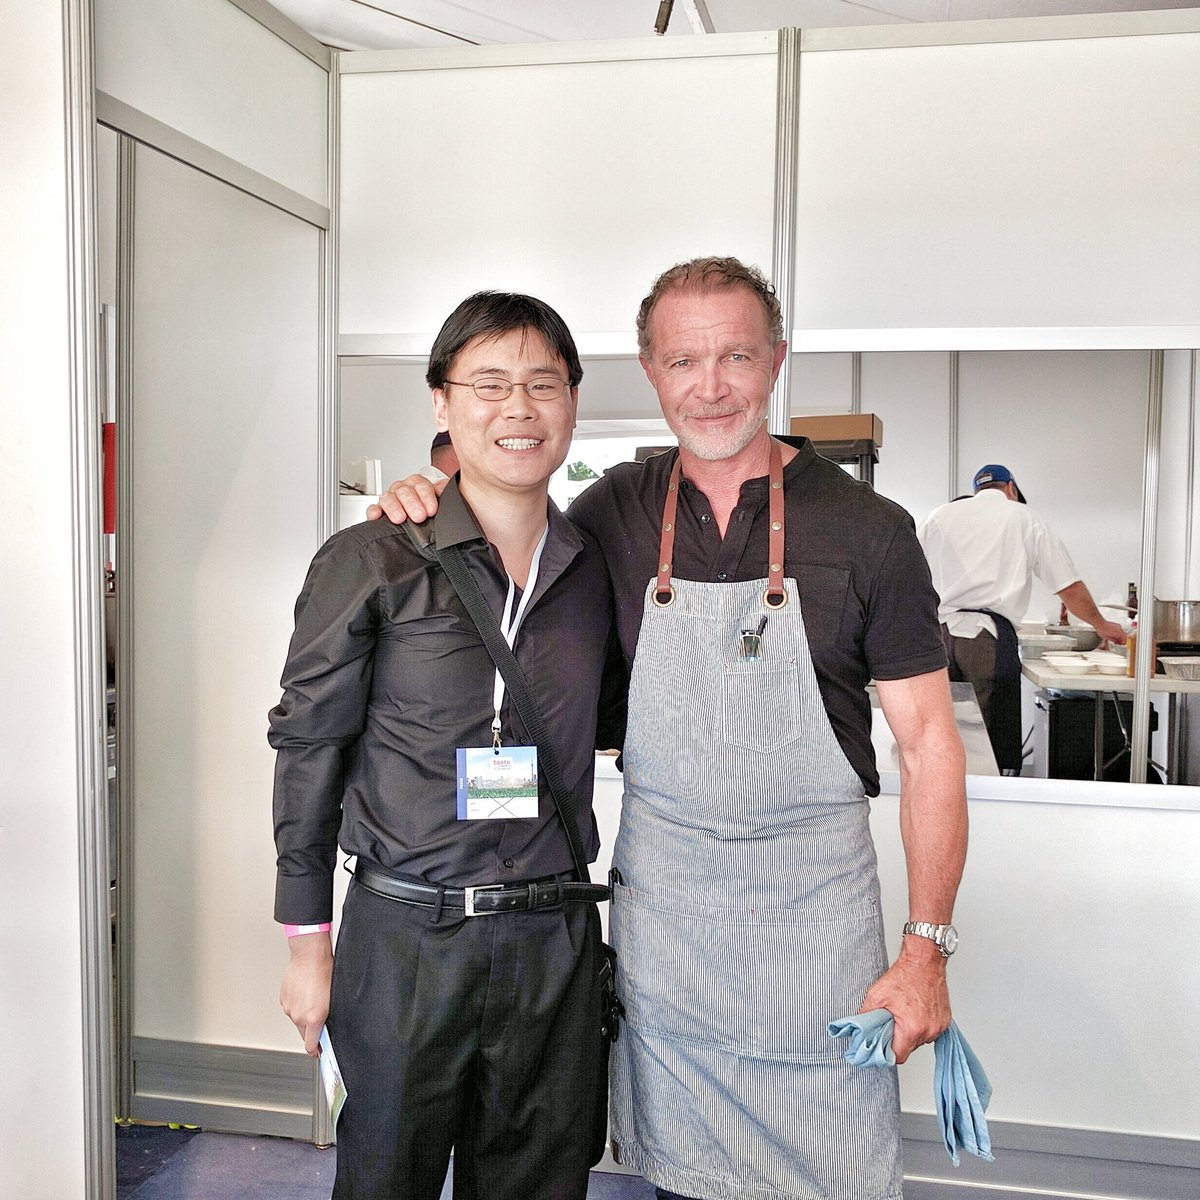 Chef Mark McEwan of the McEwan Group with Travelling Foodie Raymond Cua